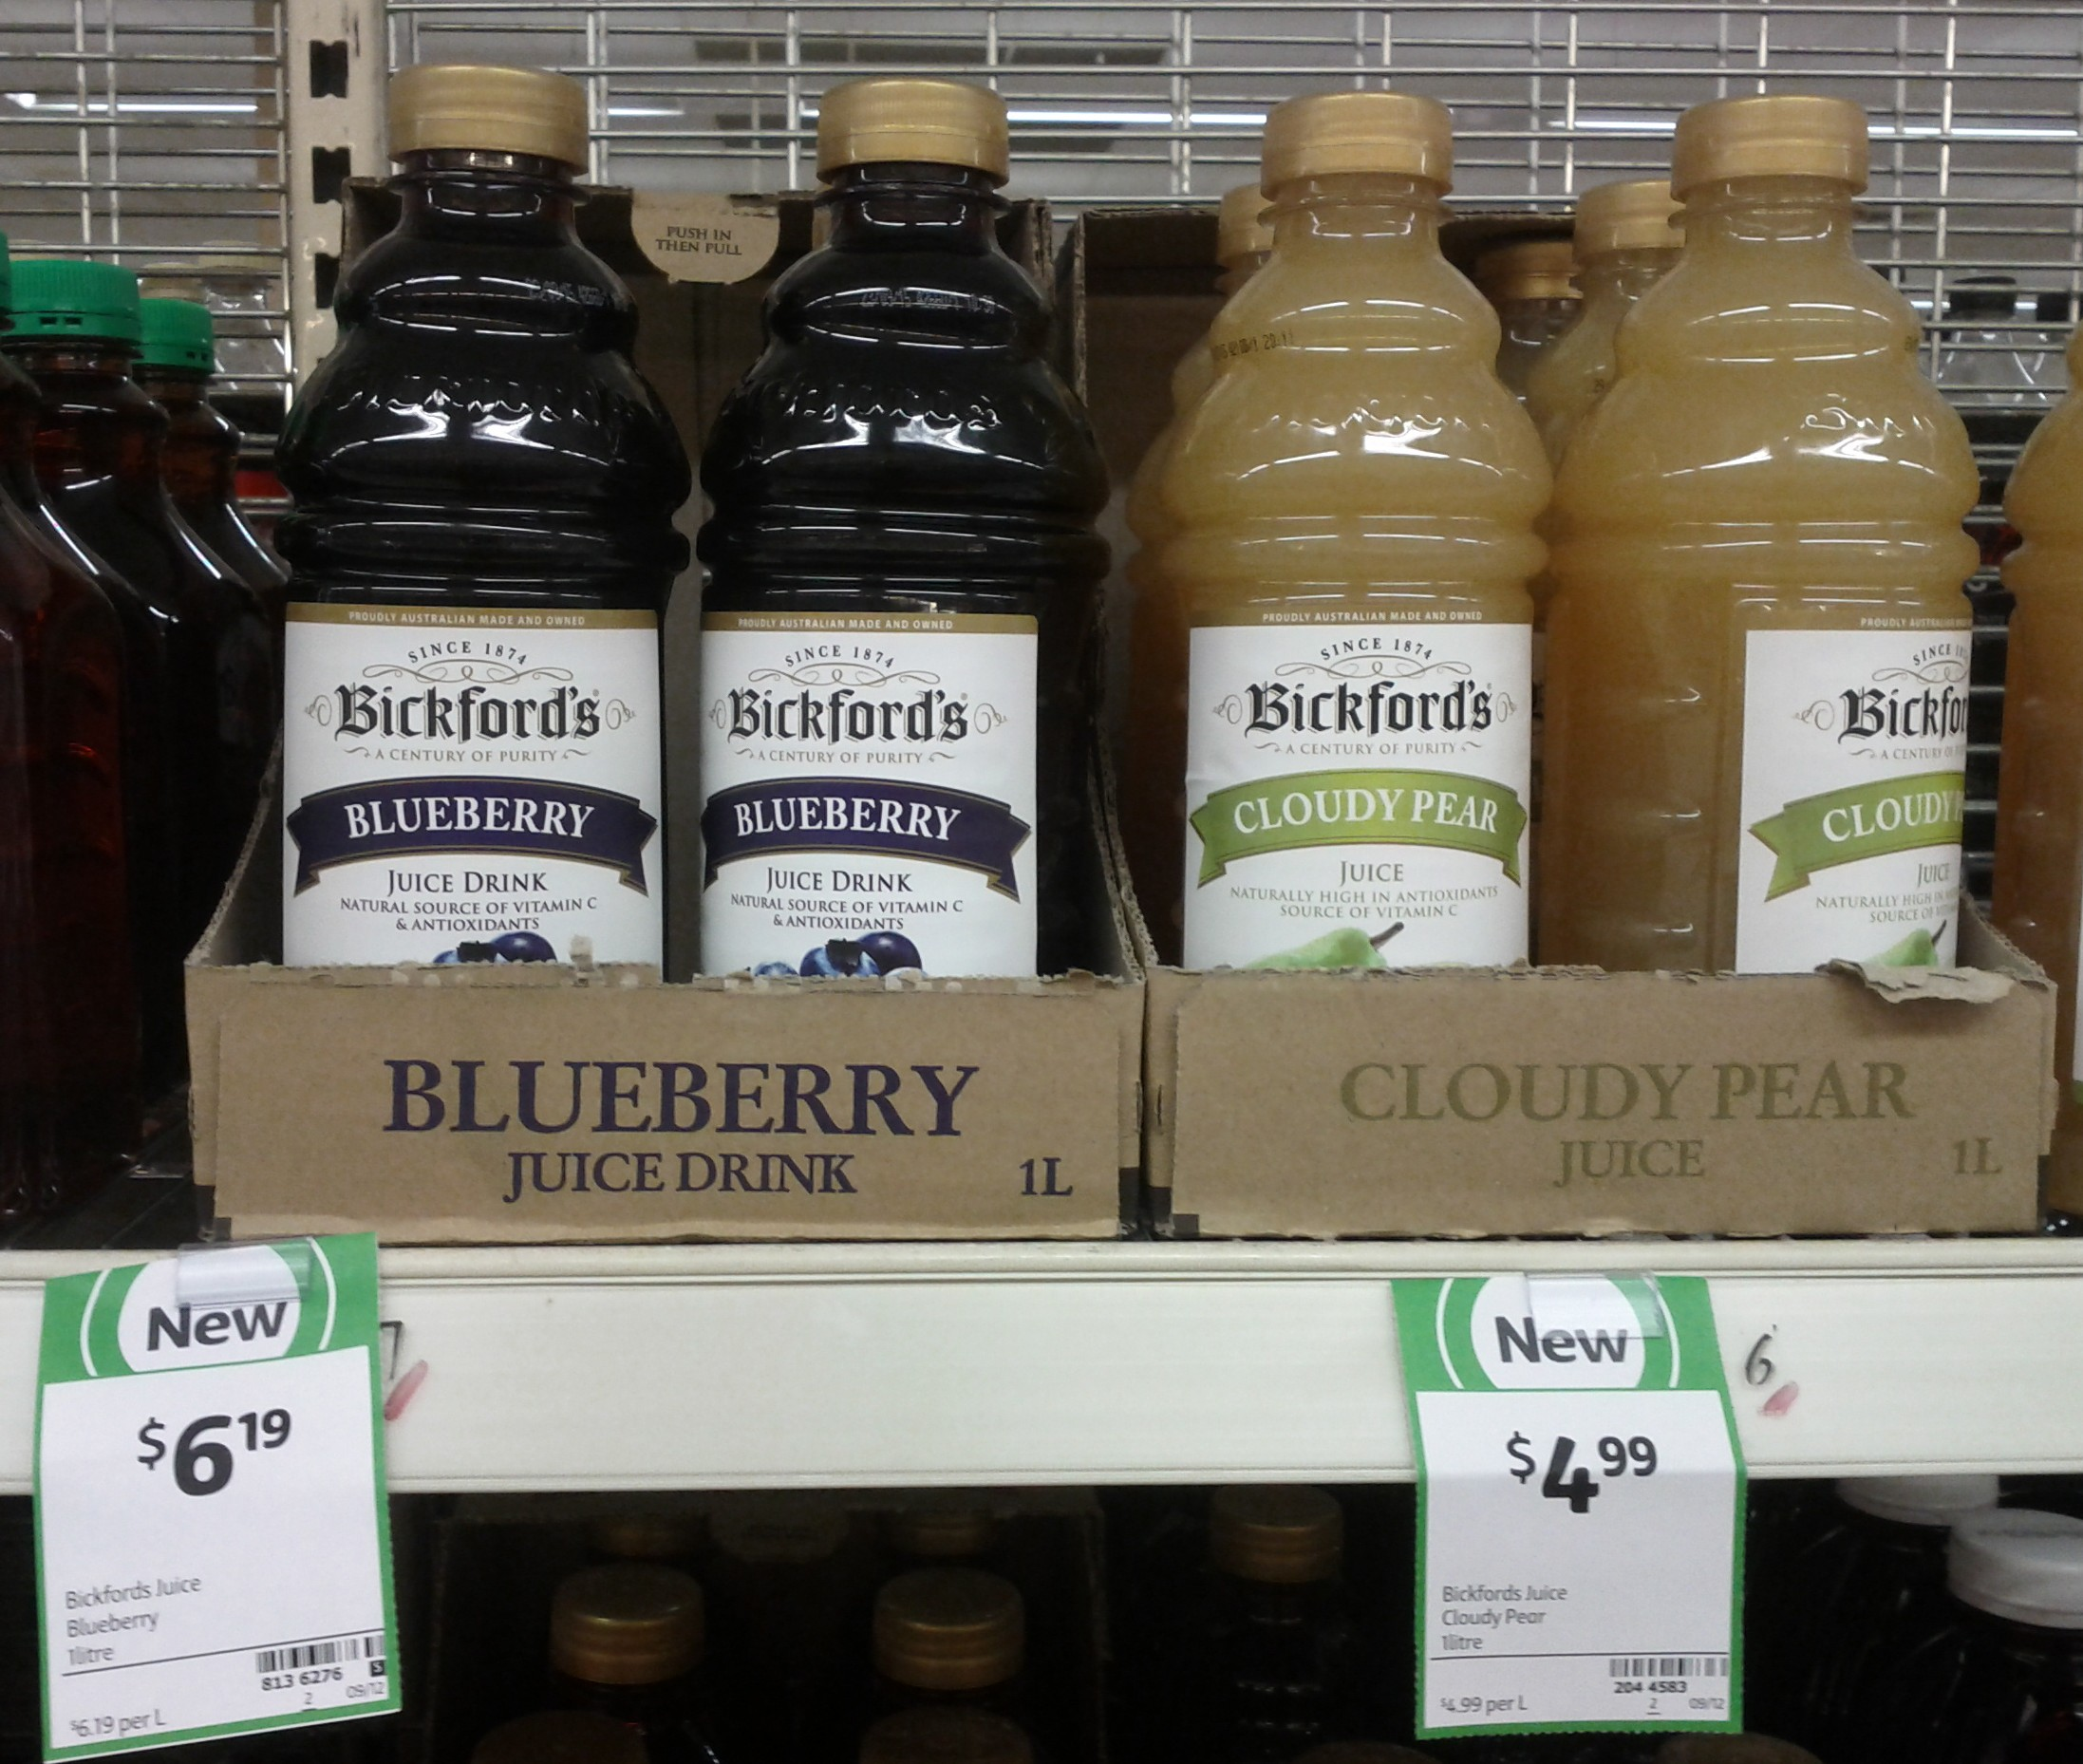 Bickford's 1L Blueberry, Cloudy Pear